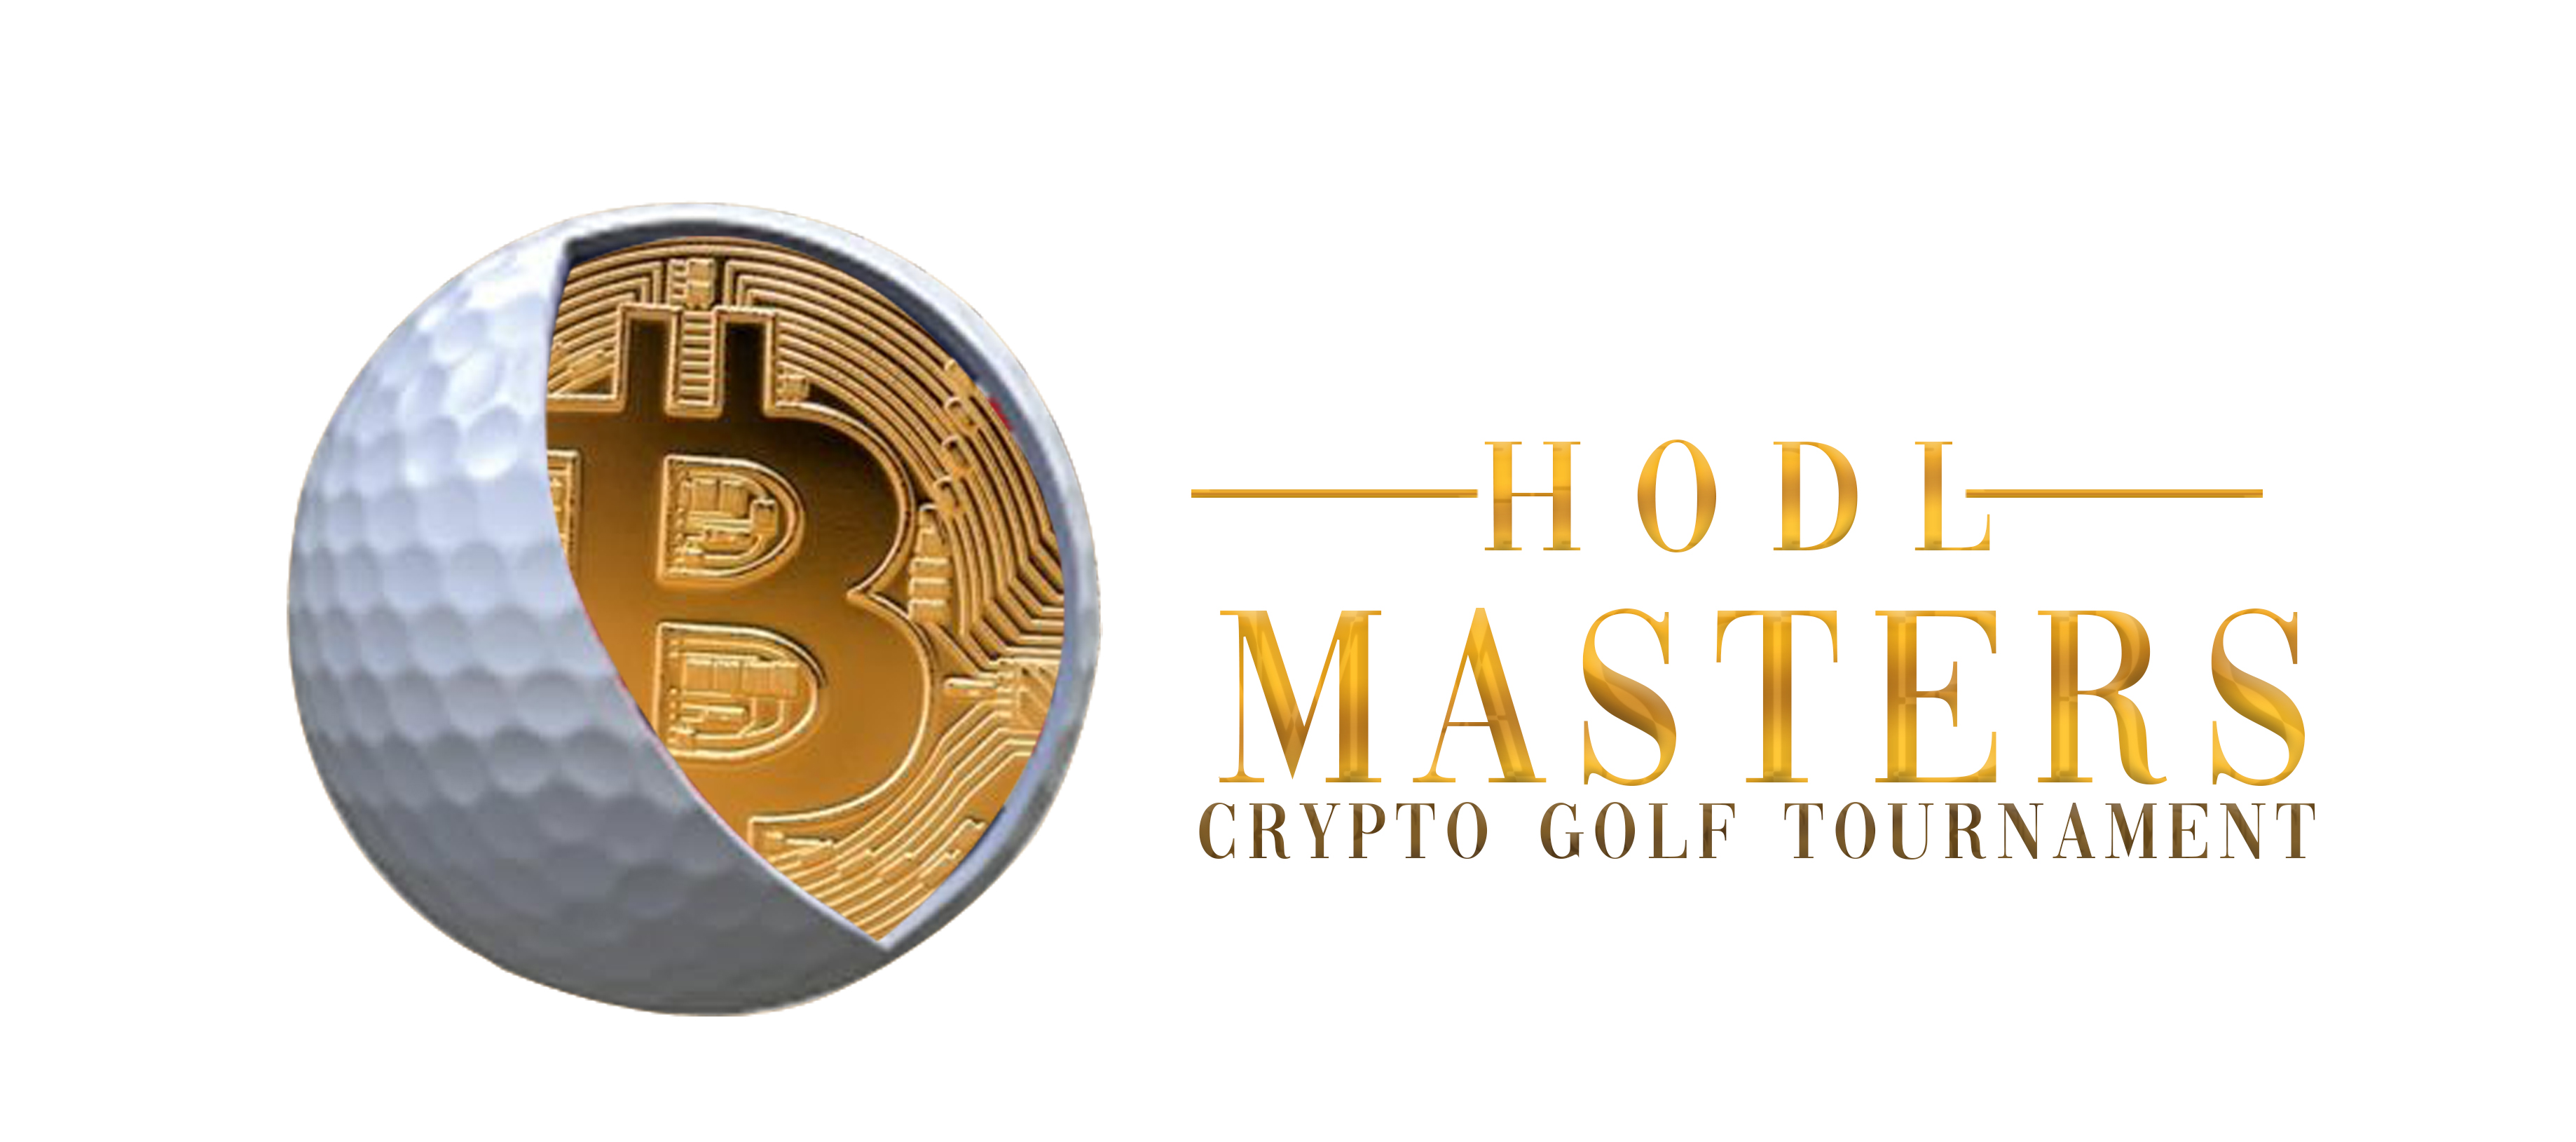 HODL Masters Crypto Golf Tournament logo